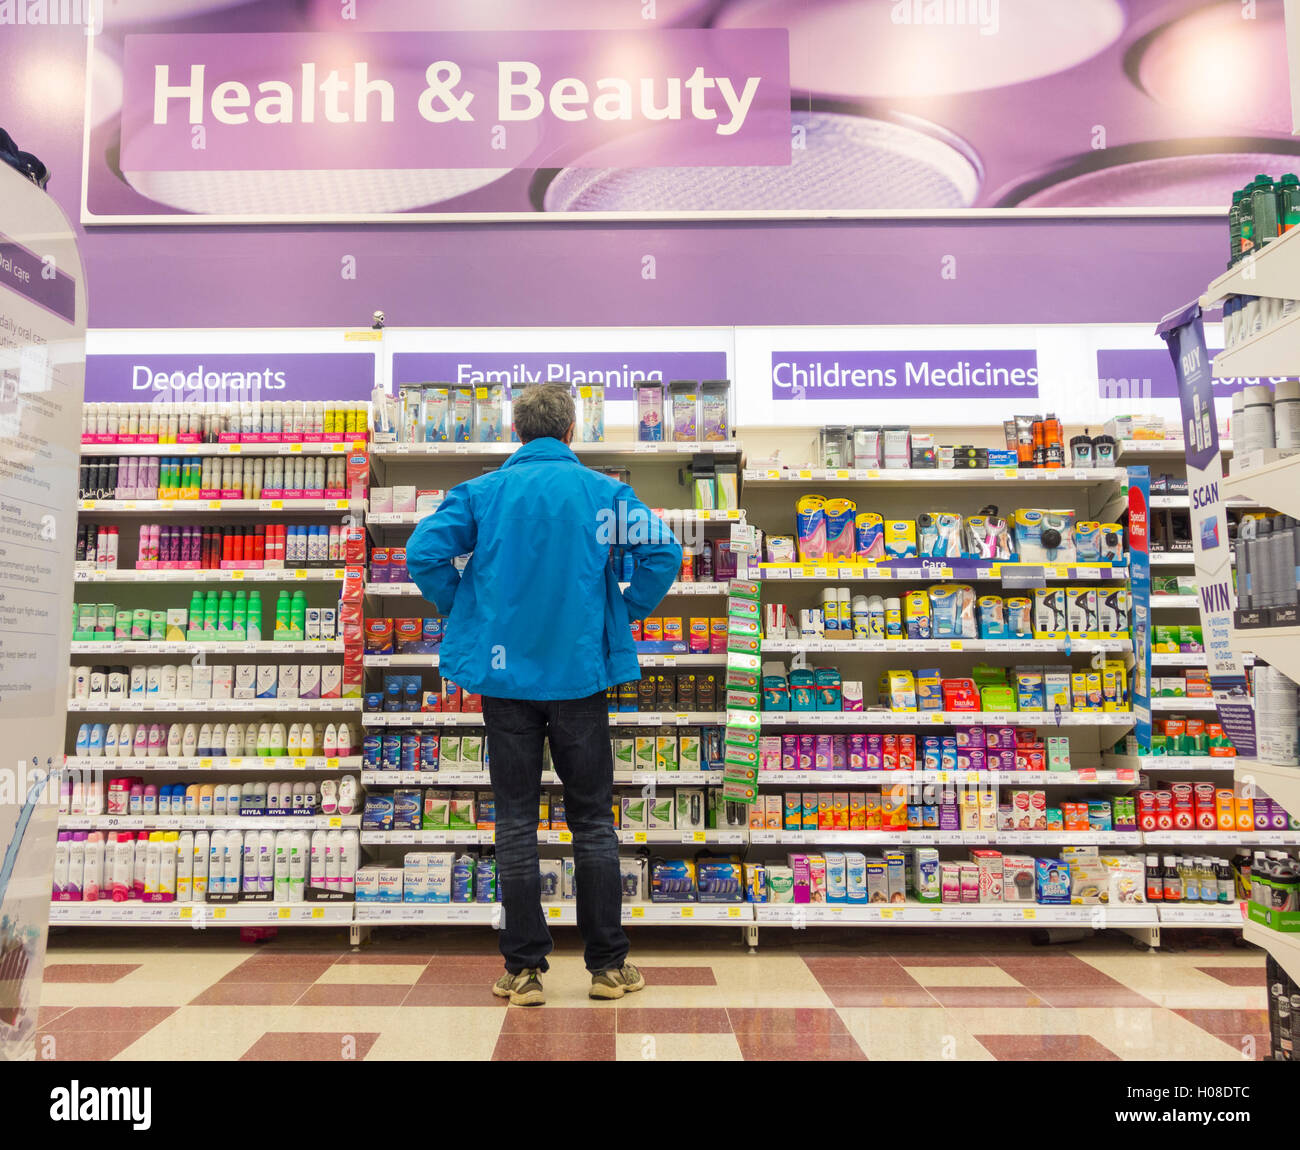 Man looking at Family planning (condoms) display in Tesco supermarket. UK - Stock Image